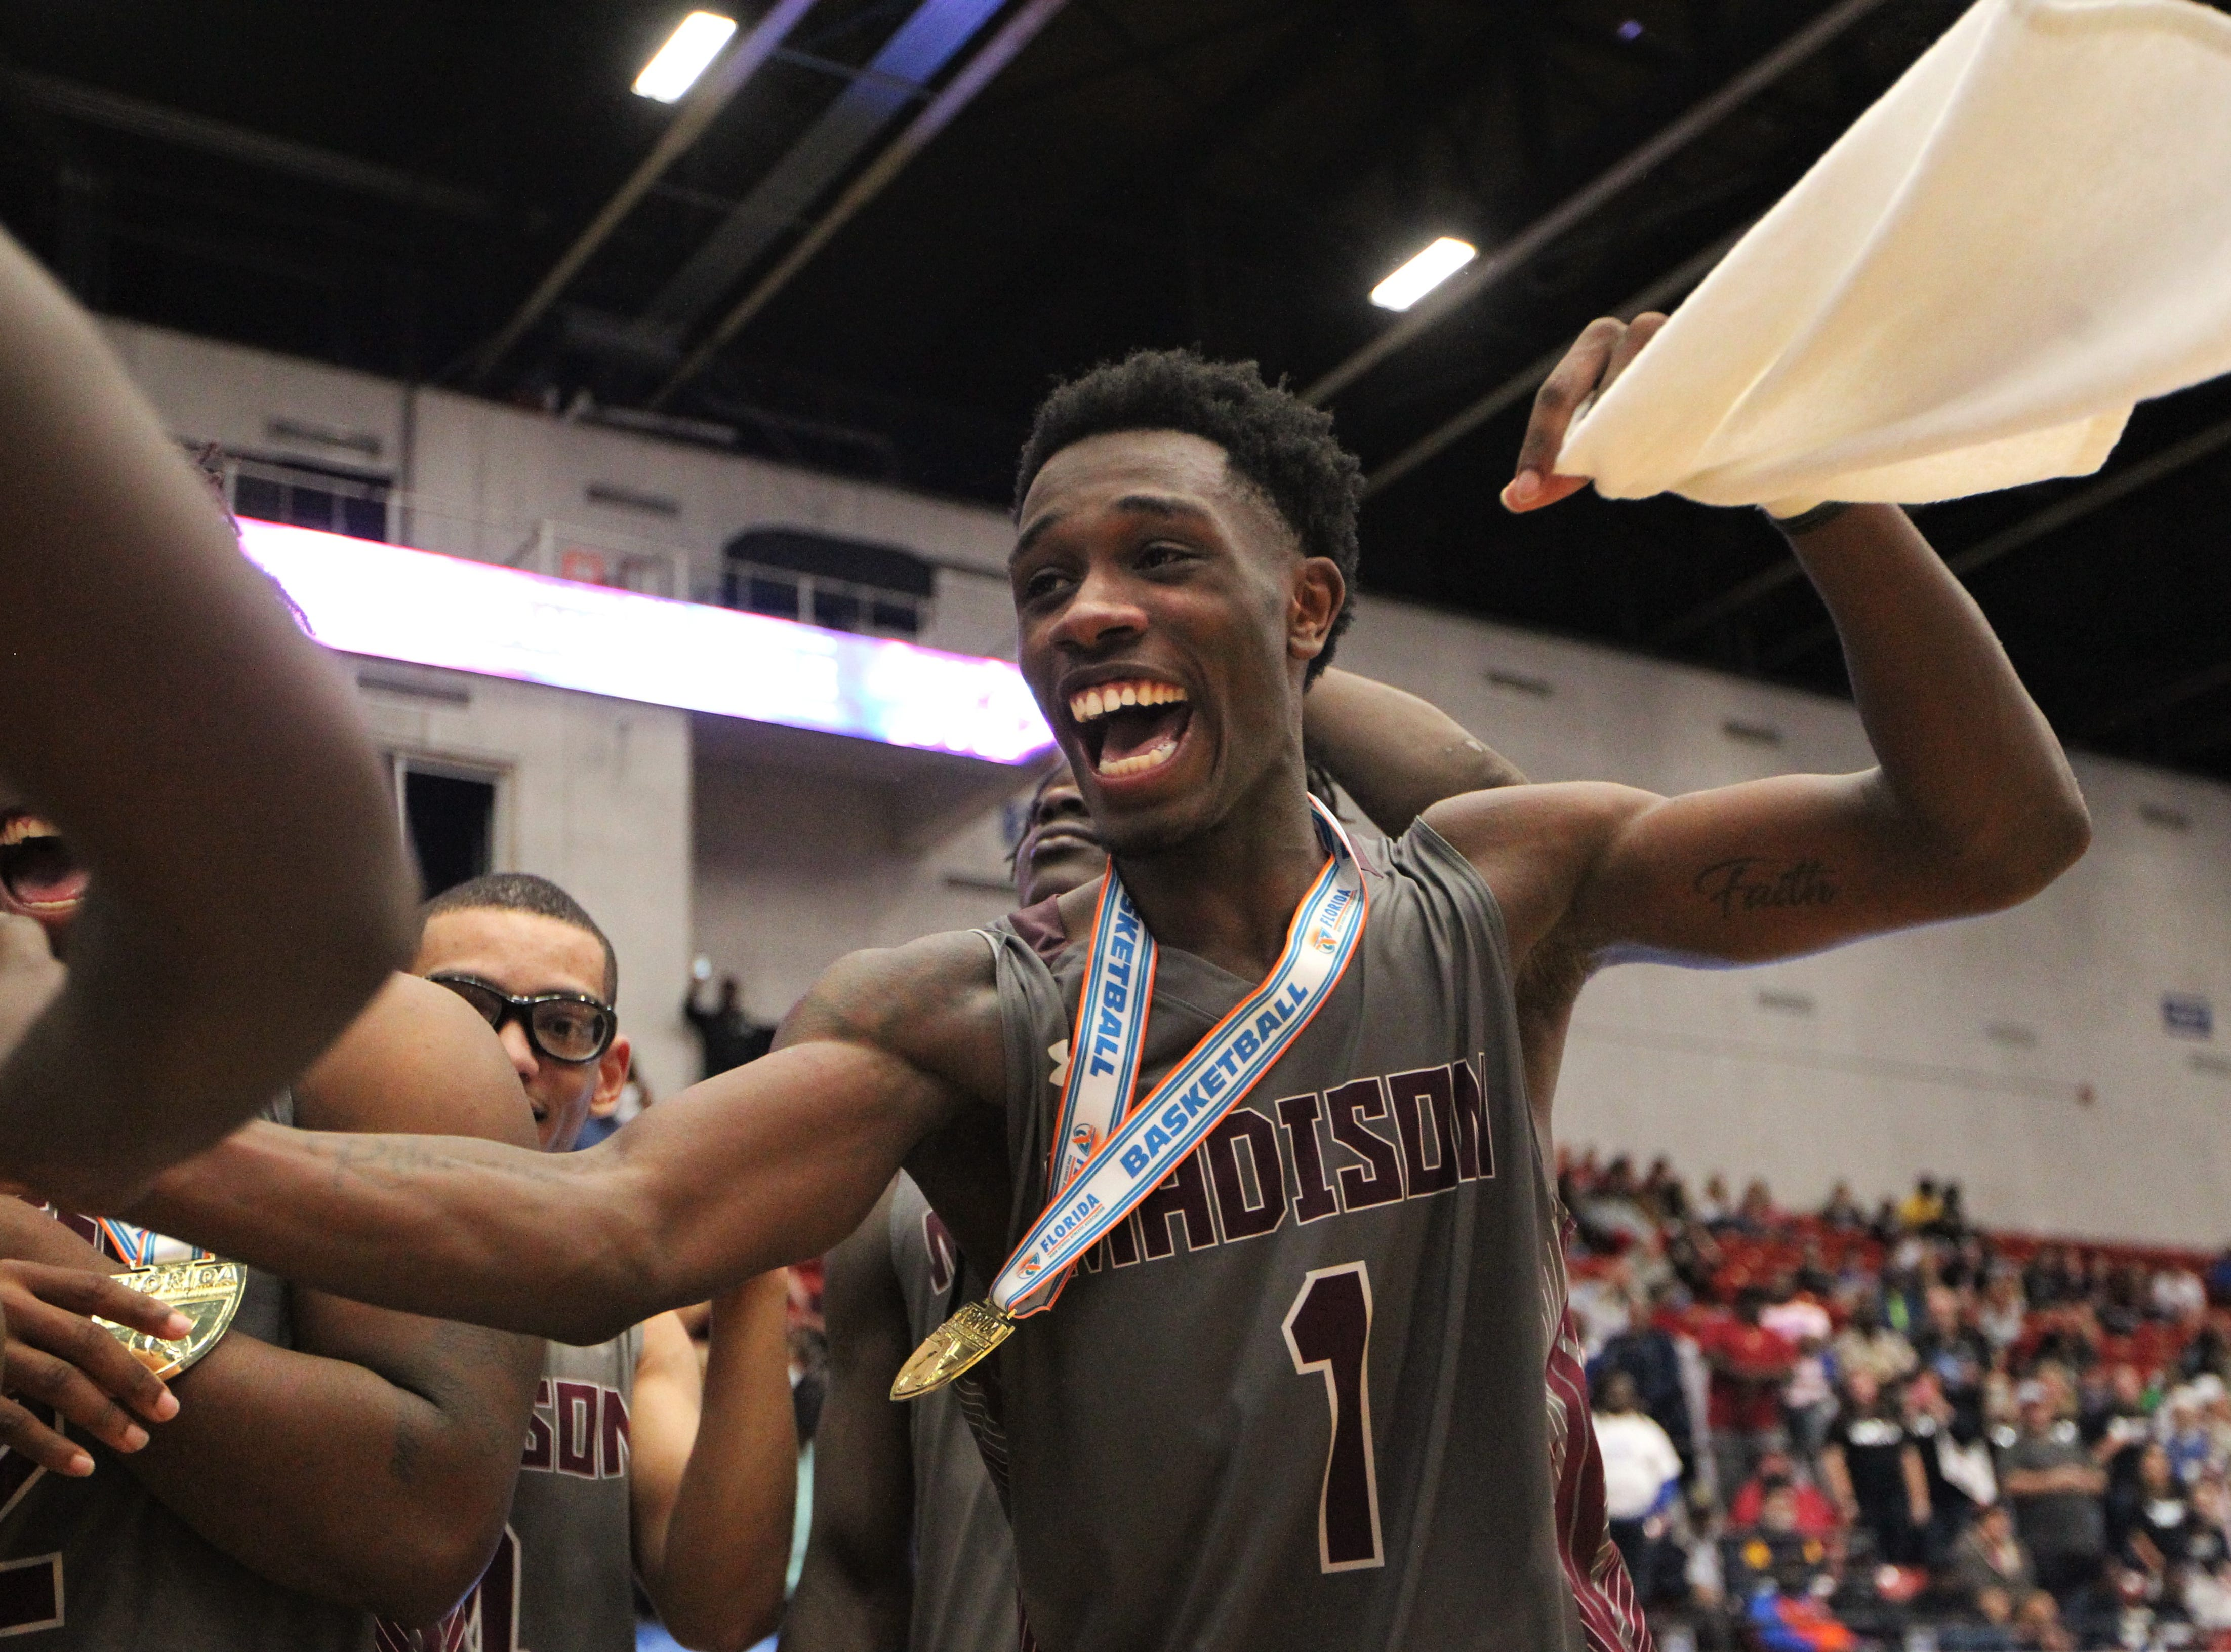 Madison County senior Vincenta Mitchell and his basketball team captured a Class 1A state championship with a 62-60 victory over Wildwood at the RP Funding Center in Lakeland on Tuesday.